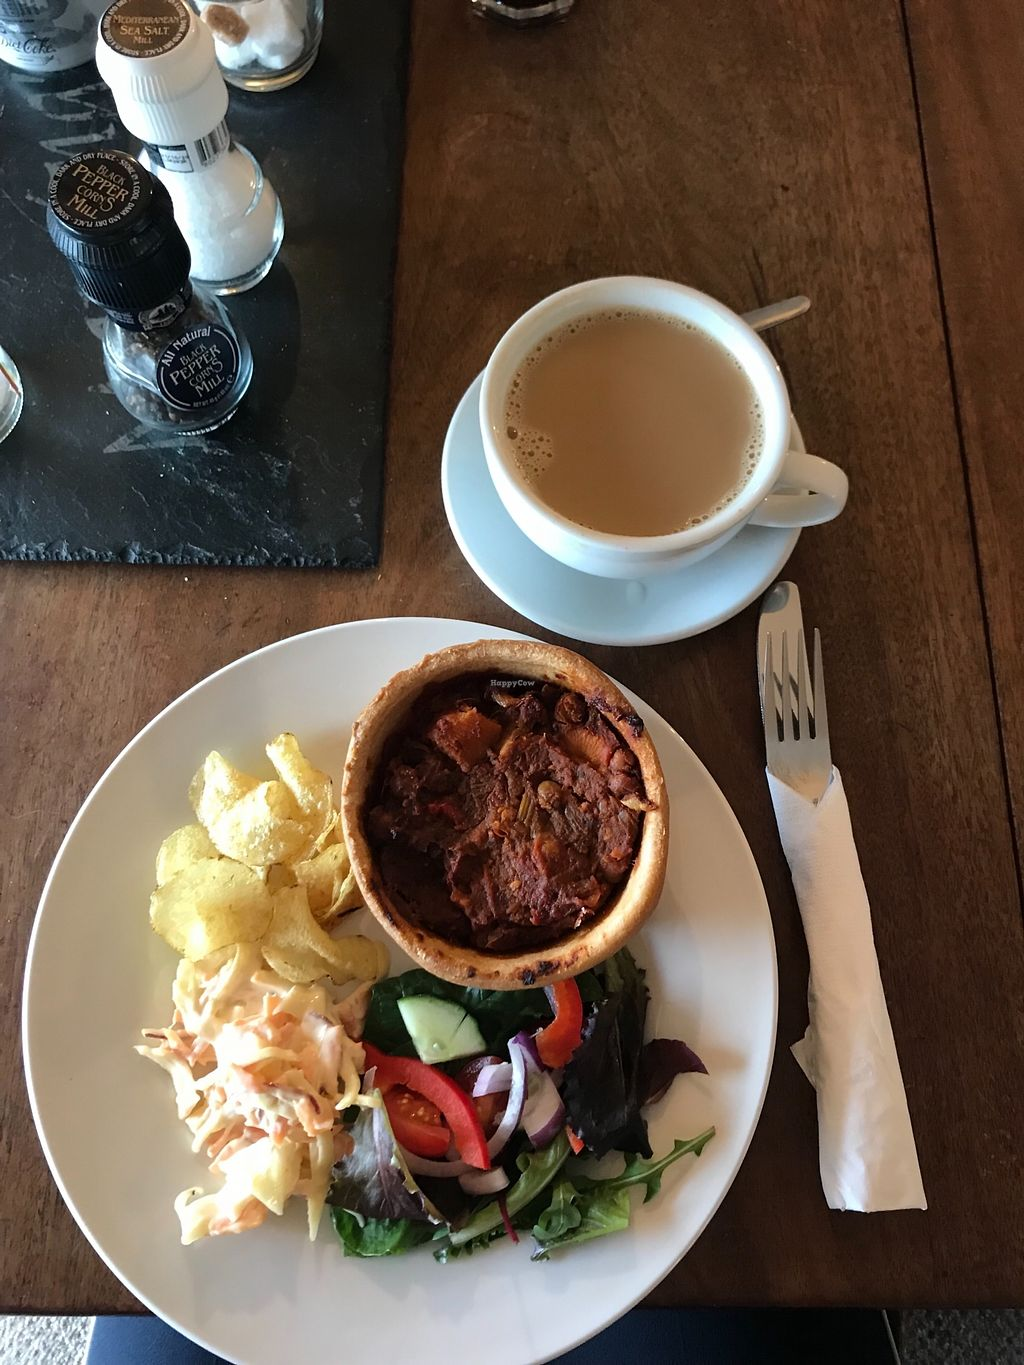 "Photo of Mannings Grocers  by <a href=""/members/profile/soph161"">soph161</a> <br/>Moroccan Tart and soya latte! <br/> April 11, 2018  - <a href='/contact/abuse/image/117460/384097'>Report</a>"